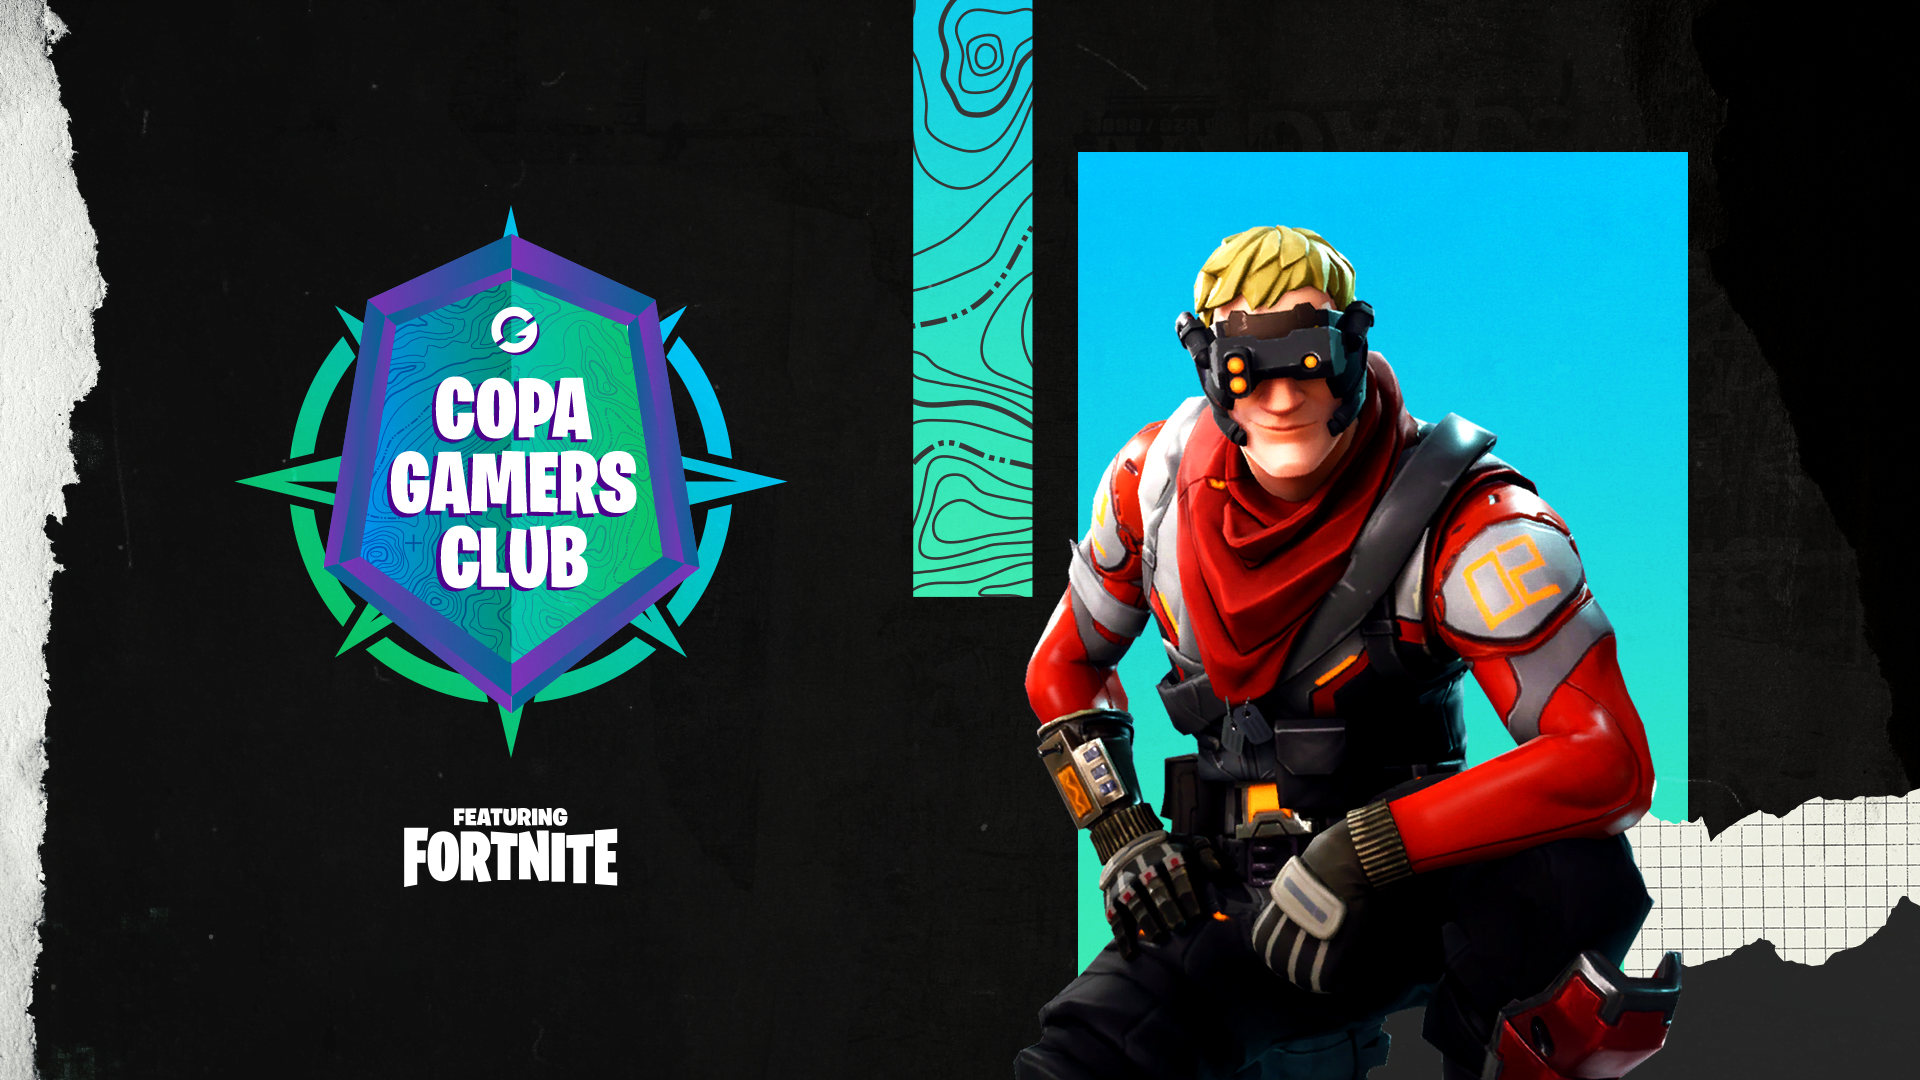 Copa Gamers Club Fortnite